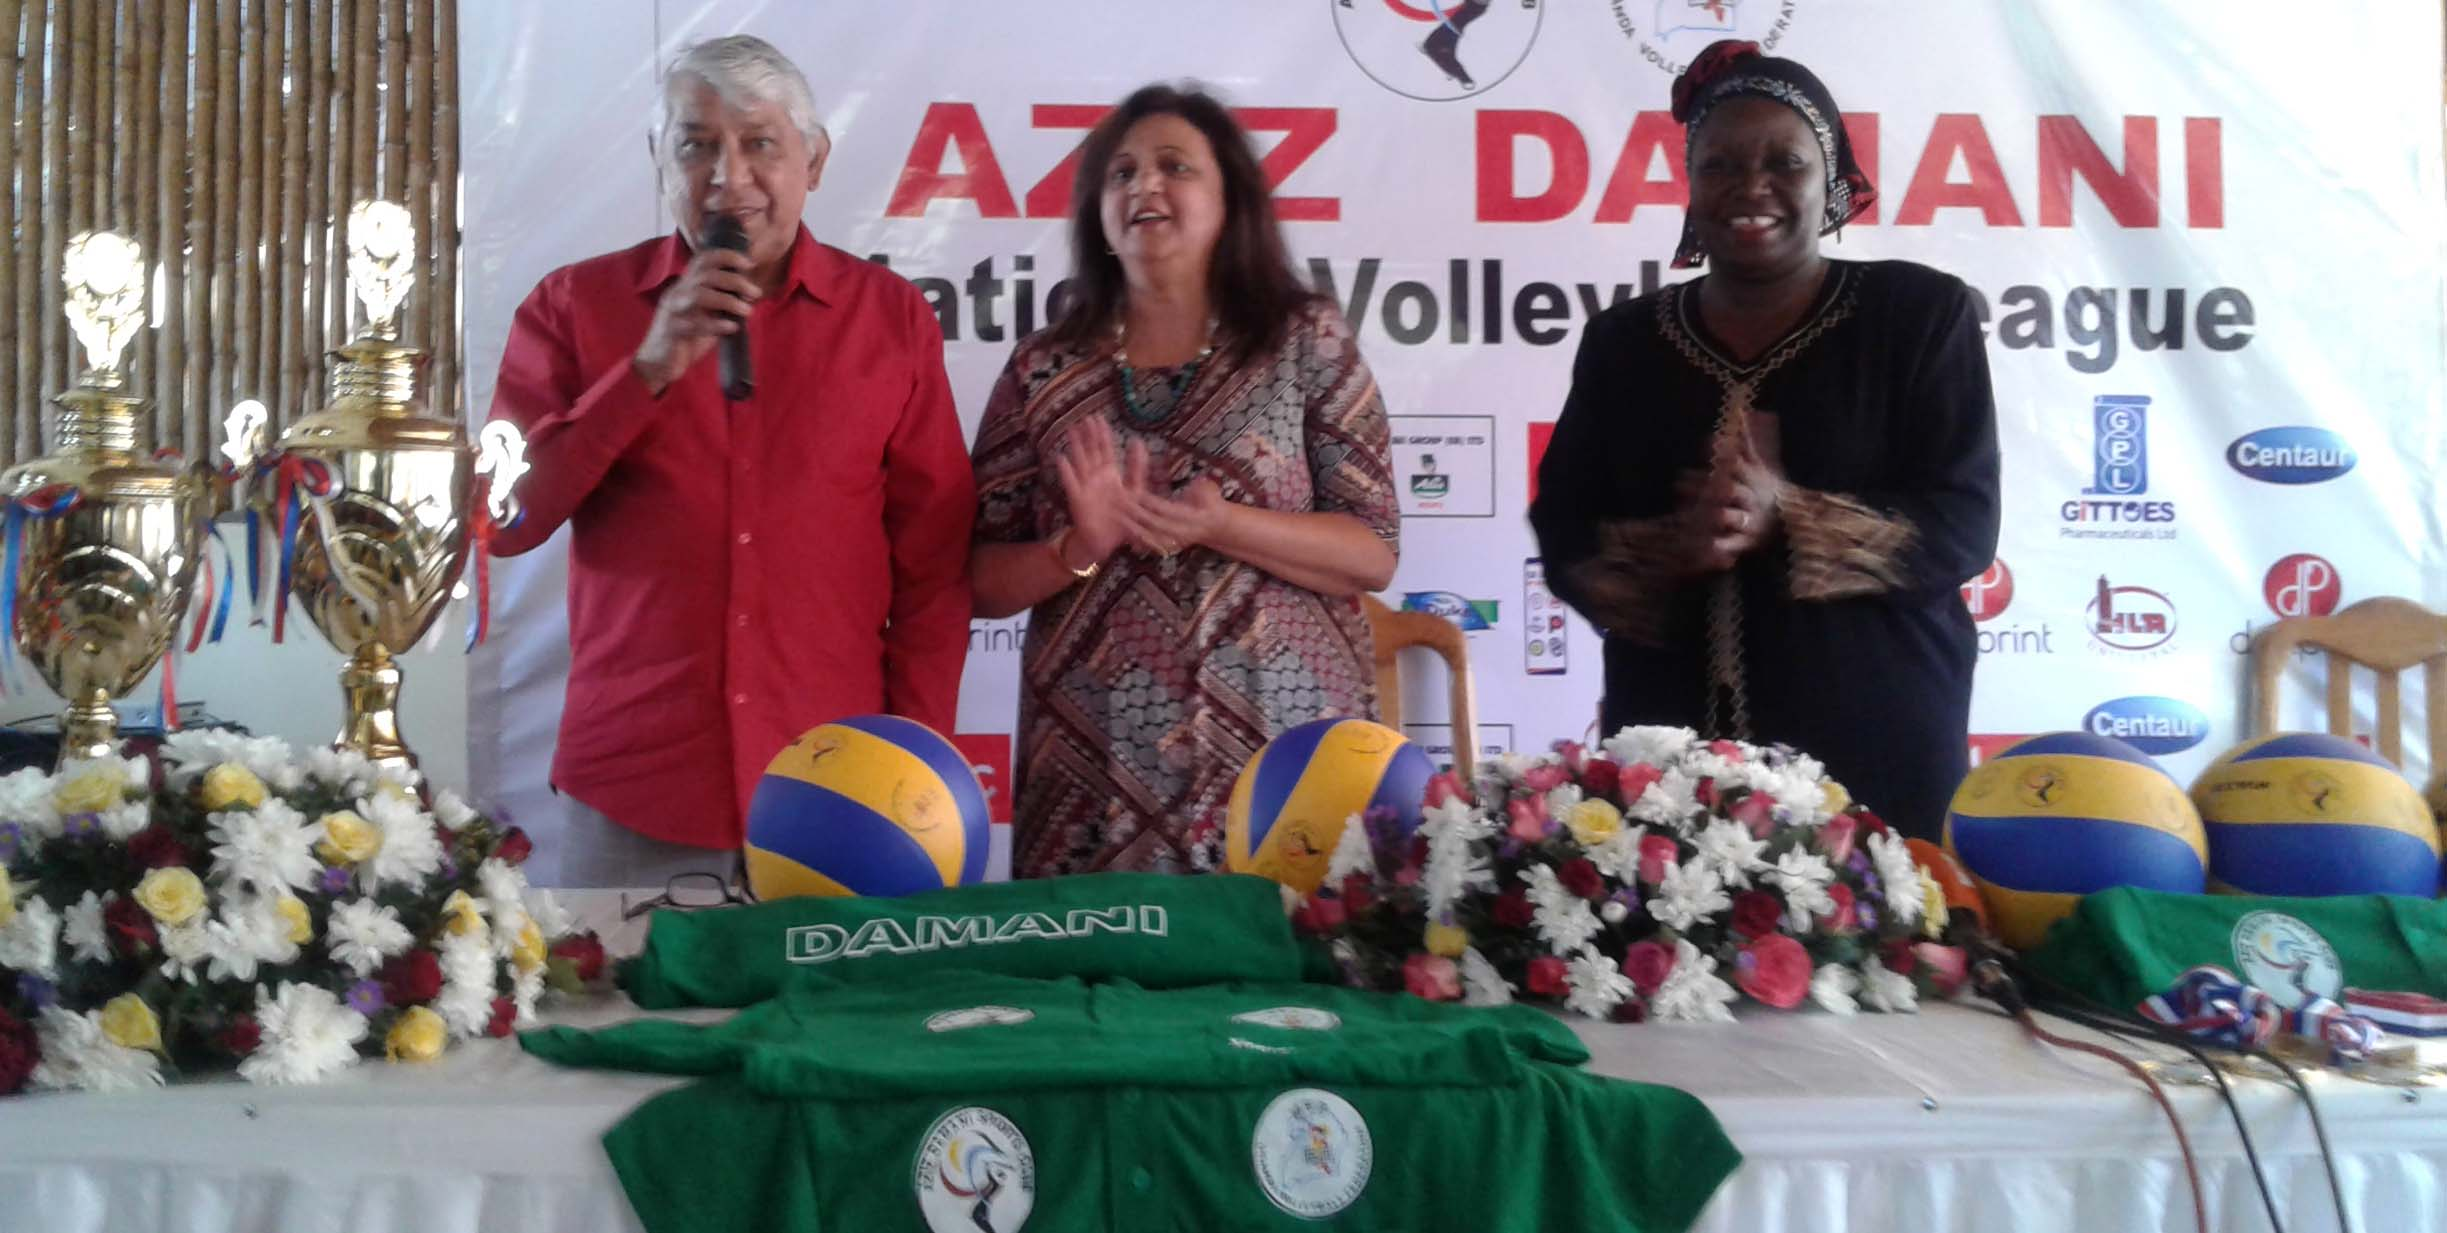 Aziz Damani(right) speaking at the event with us wife Shaniz Damani (center) and Uganda Volleyball Federation president Hadija Namanda.